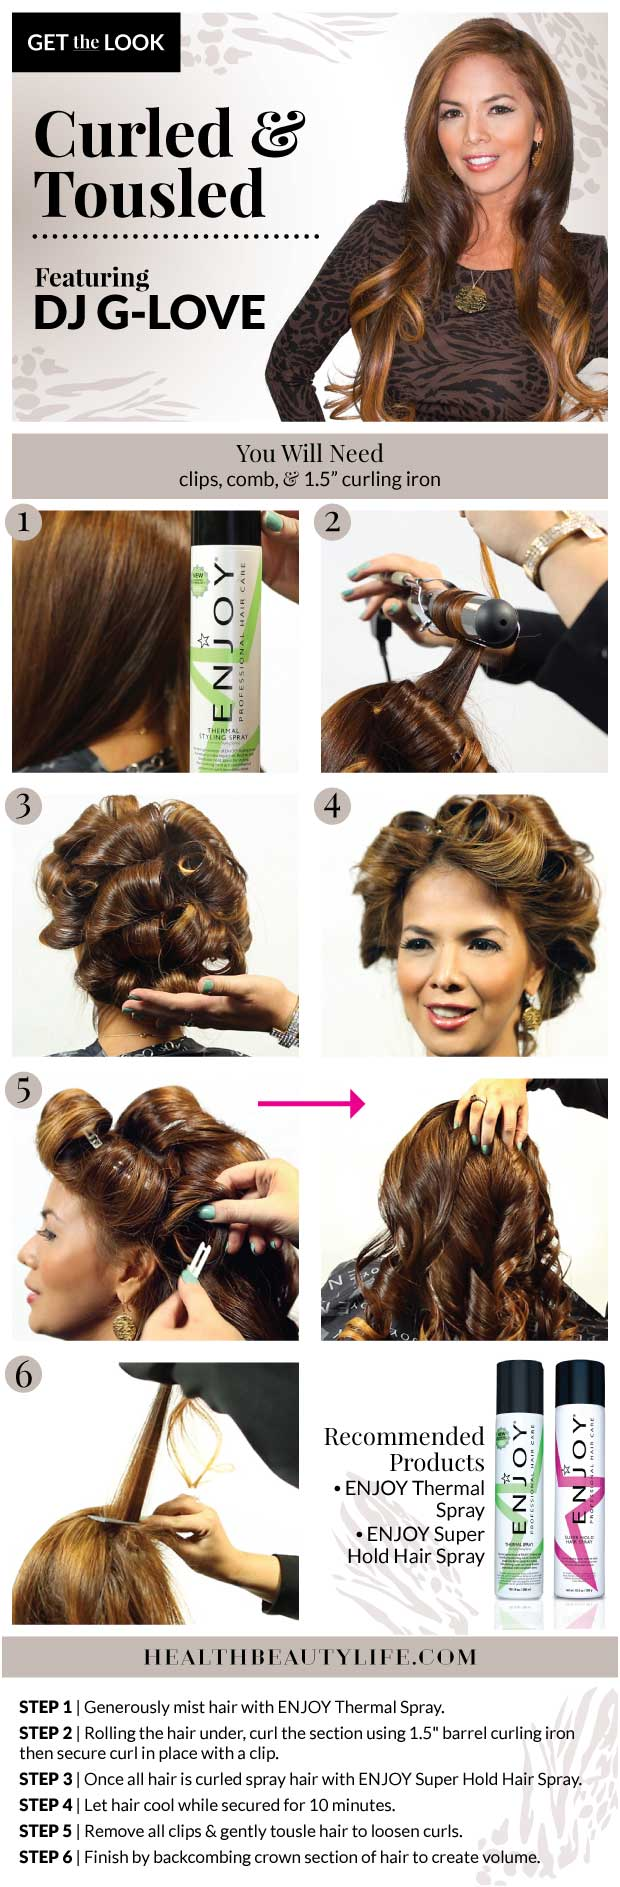 curled-tousled-hairstyle-dj-g-love